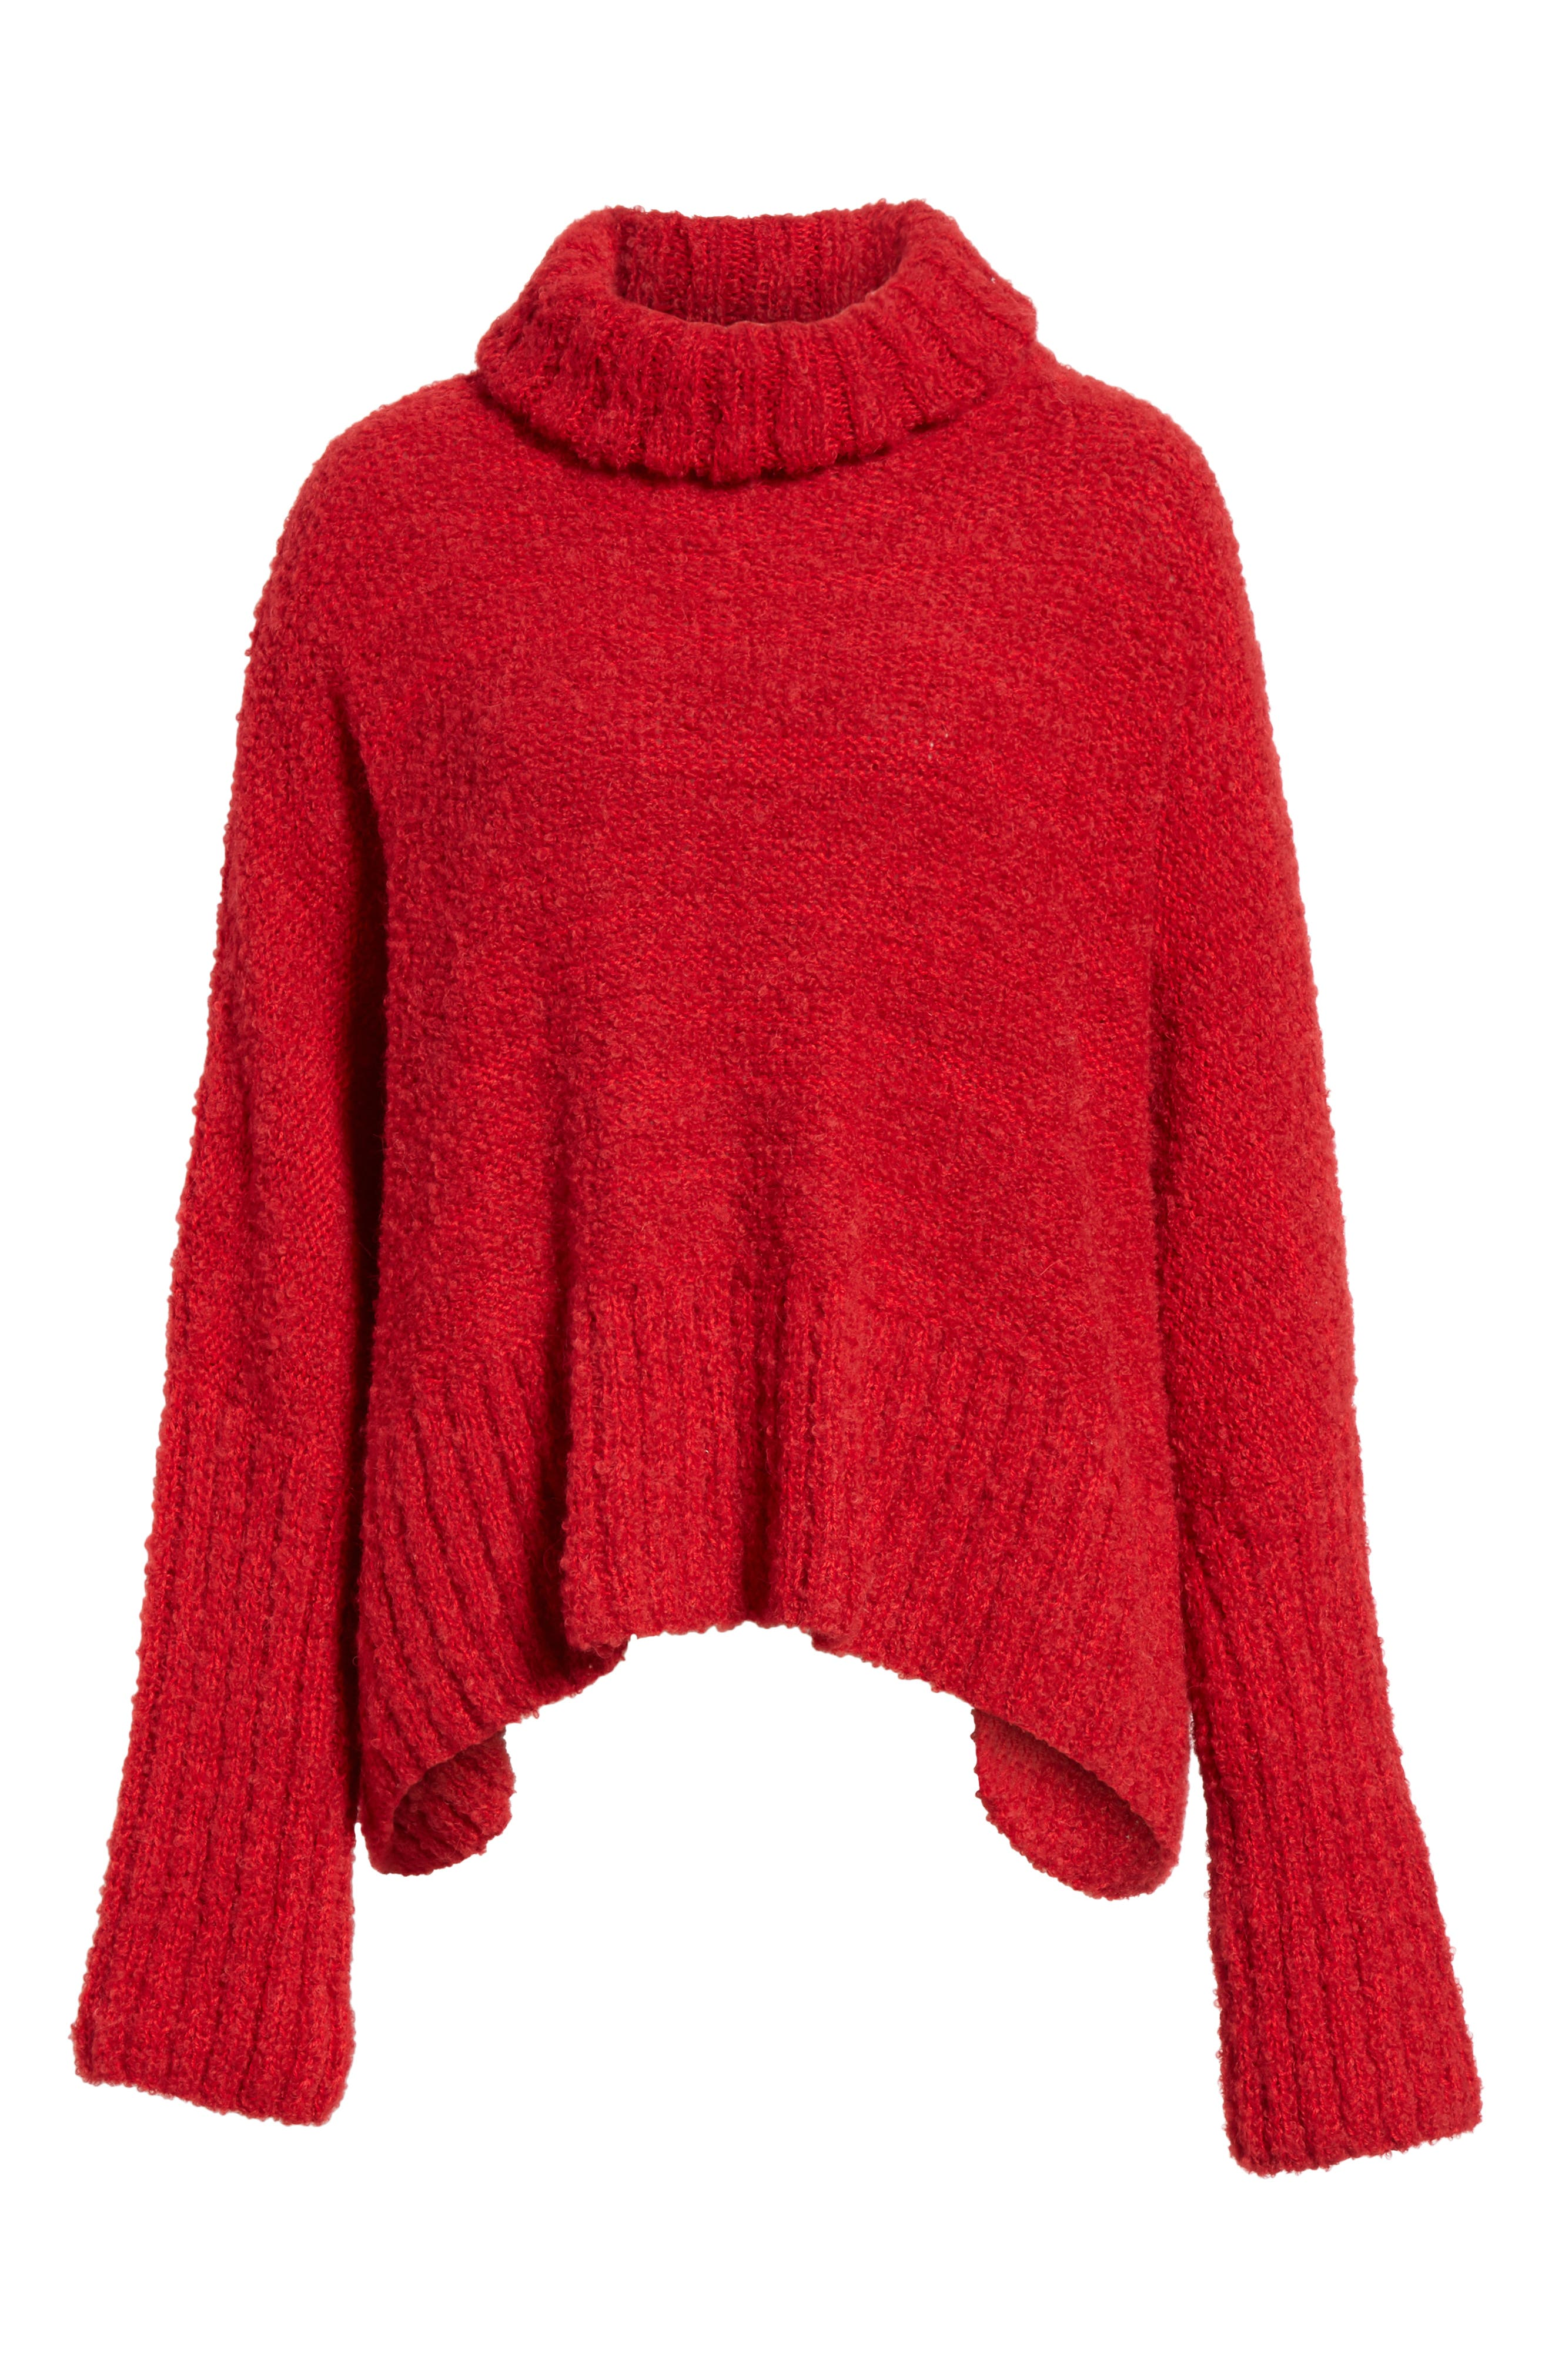 Alpaca & Wool Blend Swing Turtleneck,                             Alternate thumbnail 6, color,                             600